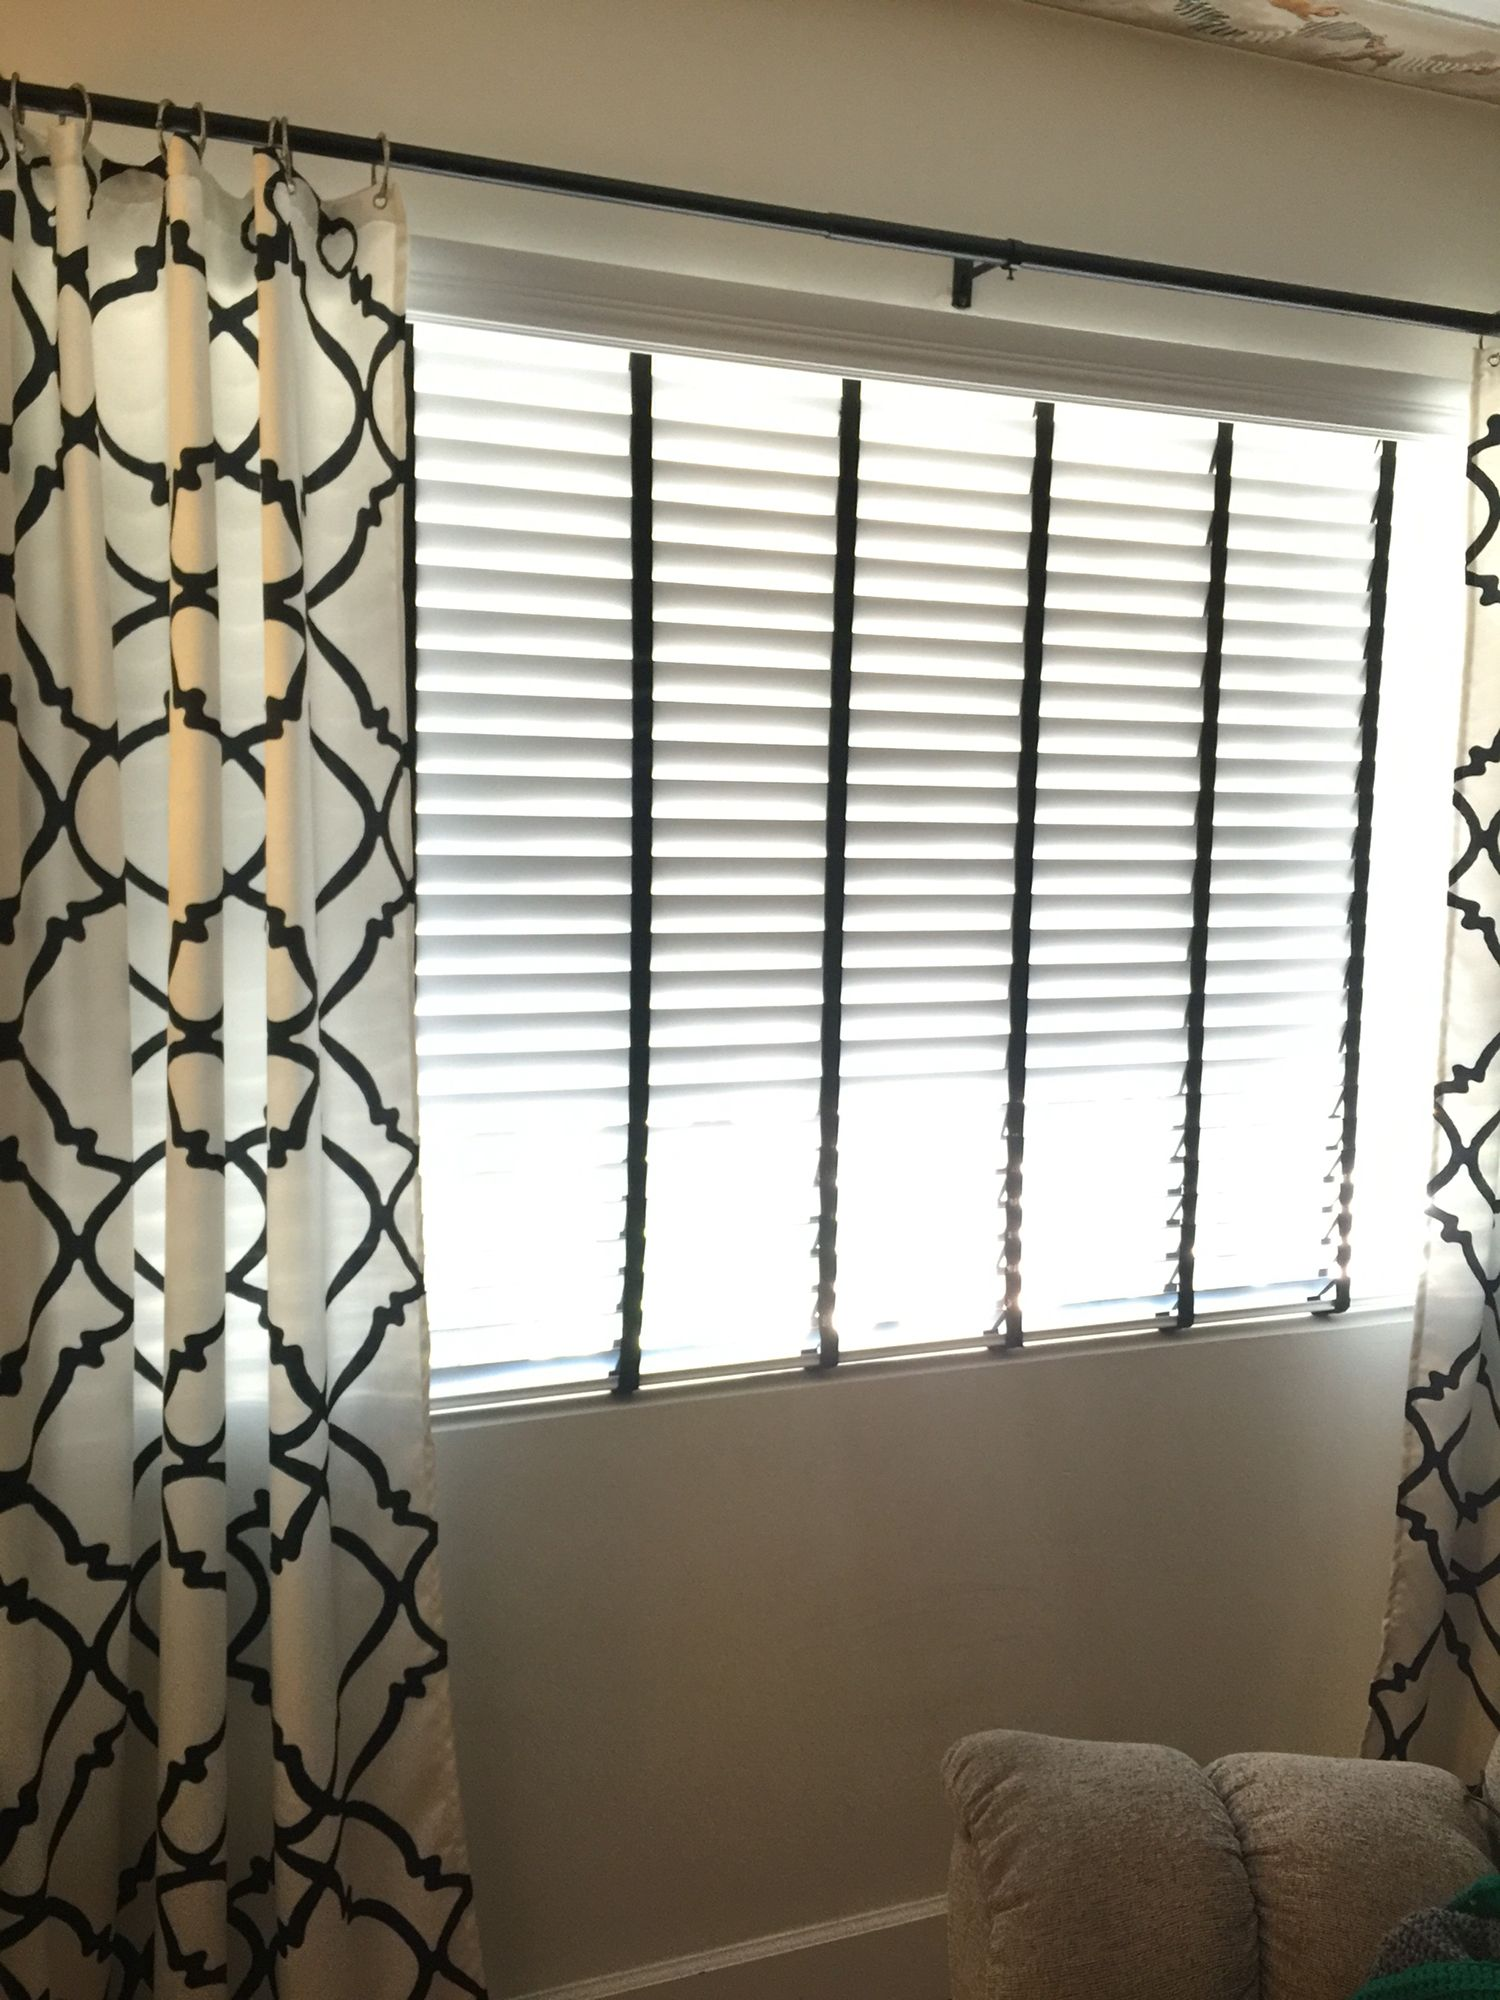 Bali White Faux Wood Blinds With Black Cloth Tape White Faux